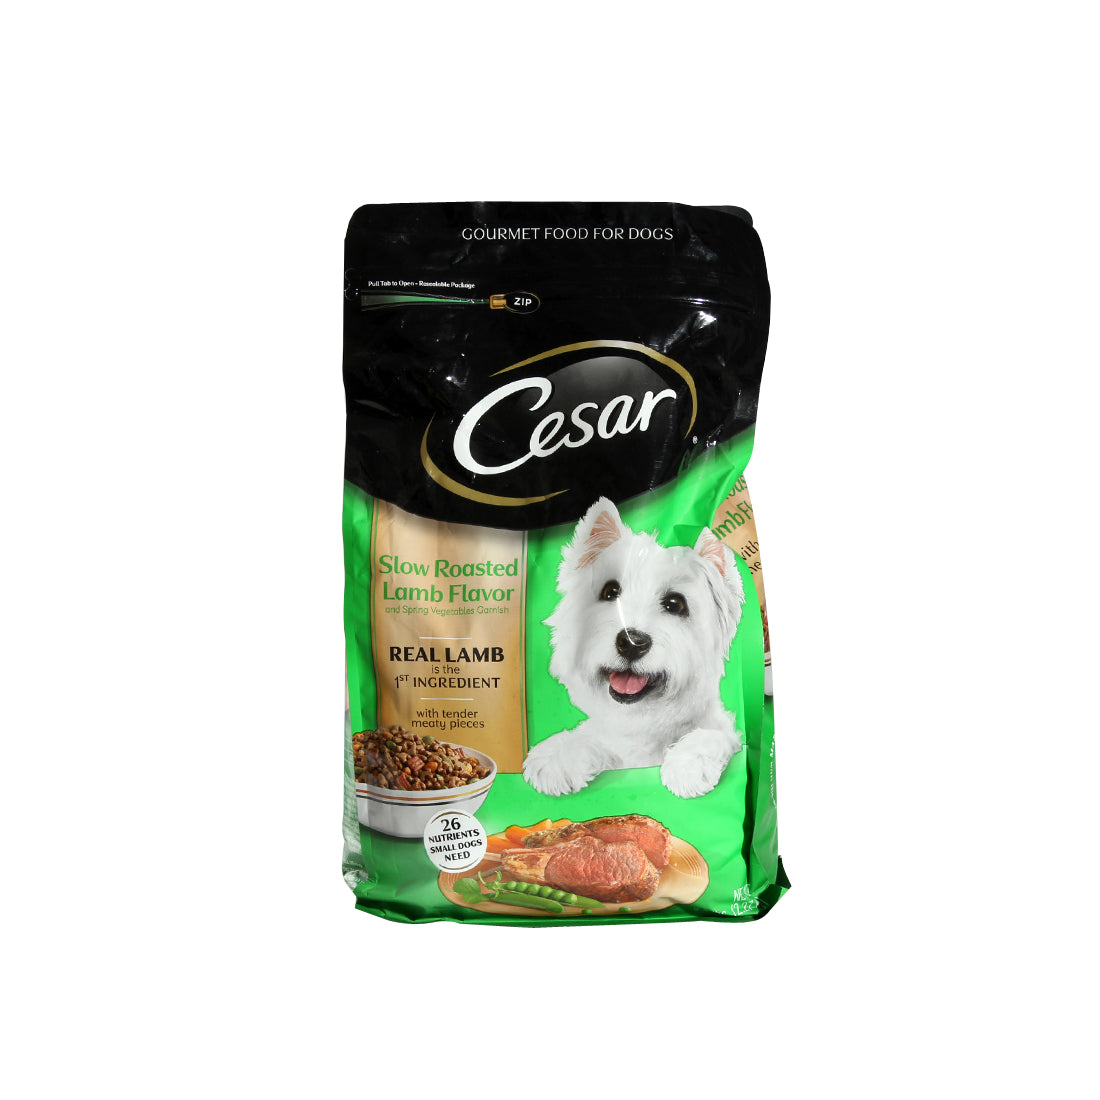 Cesar Slow Roasted Lamb Flavor With Spring Vegetables Garnish Dry Small Dog Food -3712